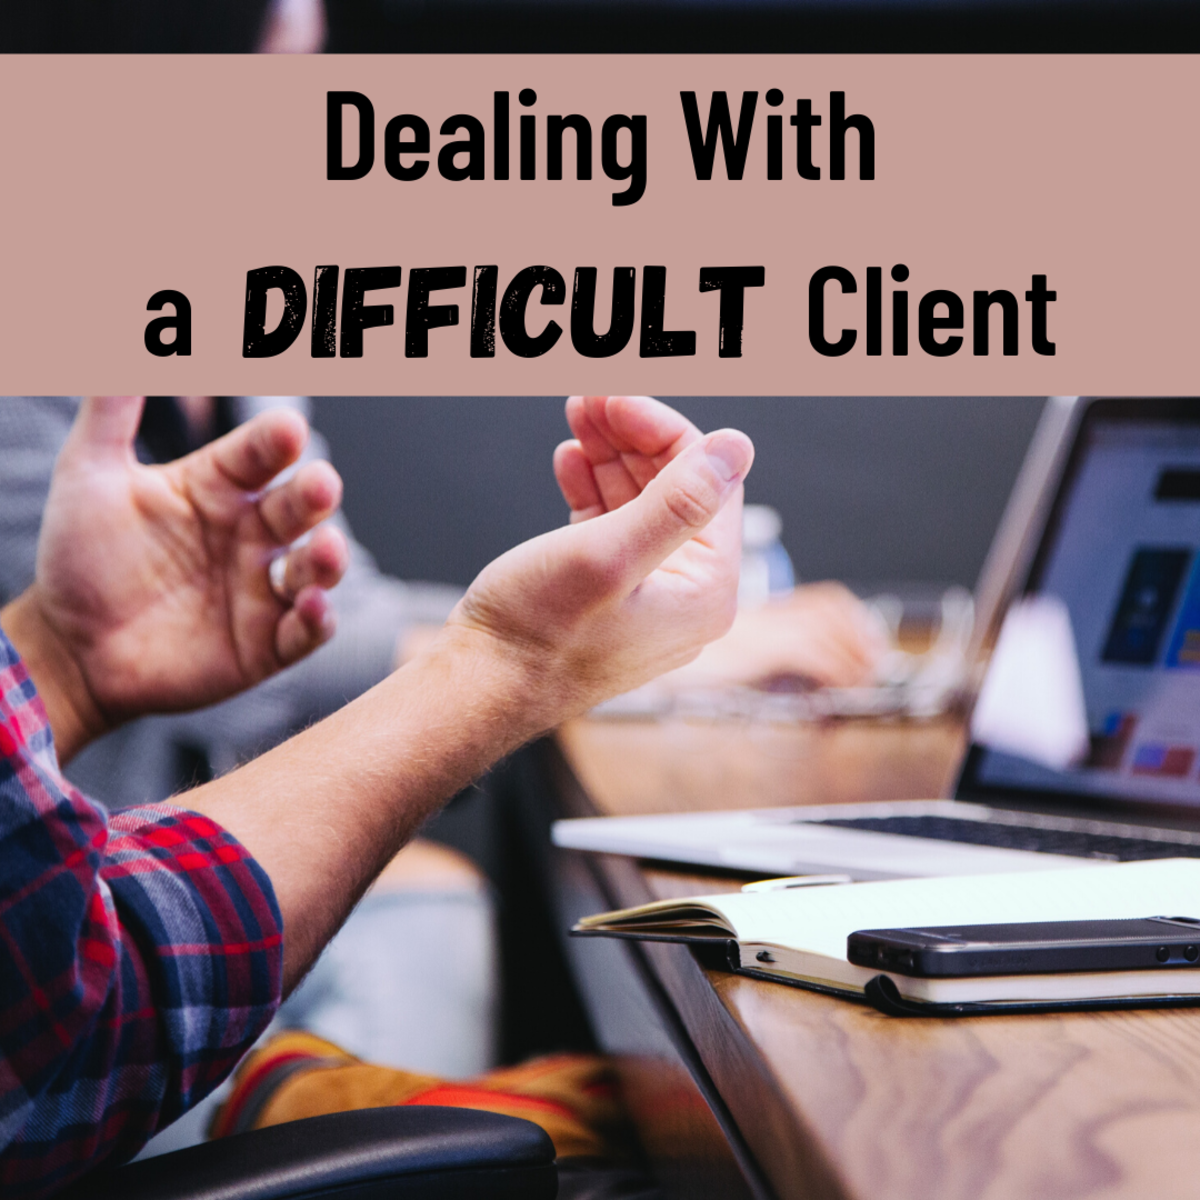 Get advice on how to handle a difficult client, from staying grounded to not letting the situation escalate.